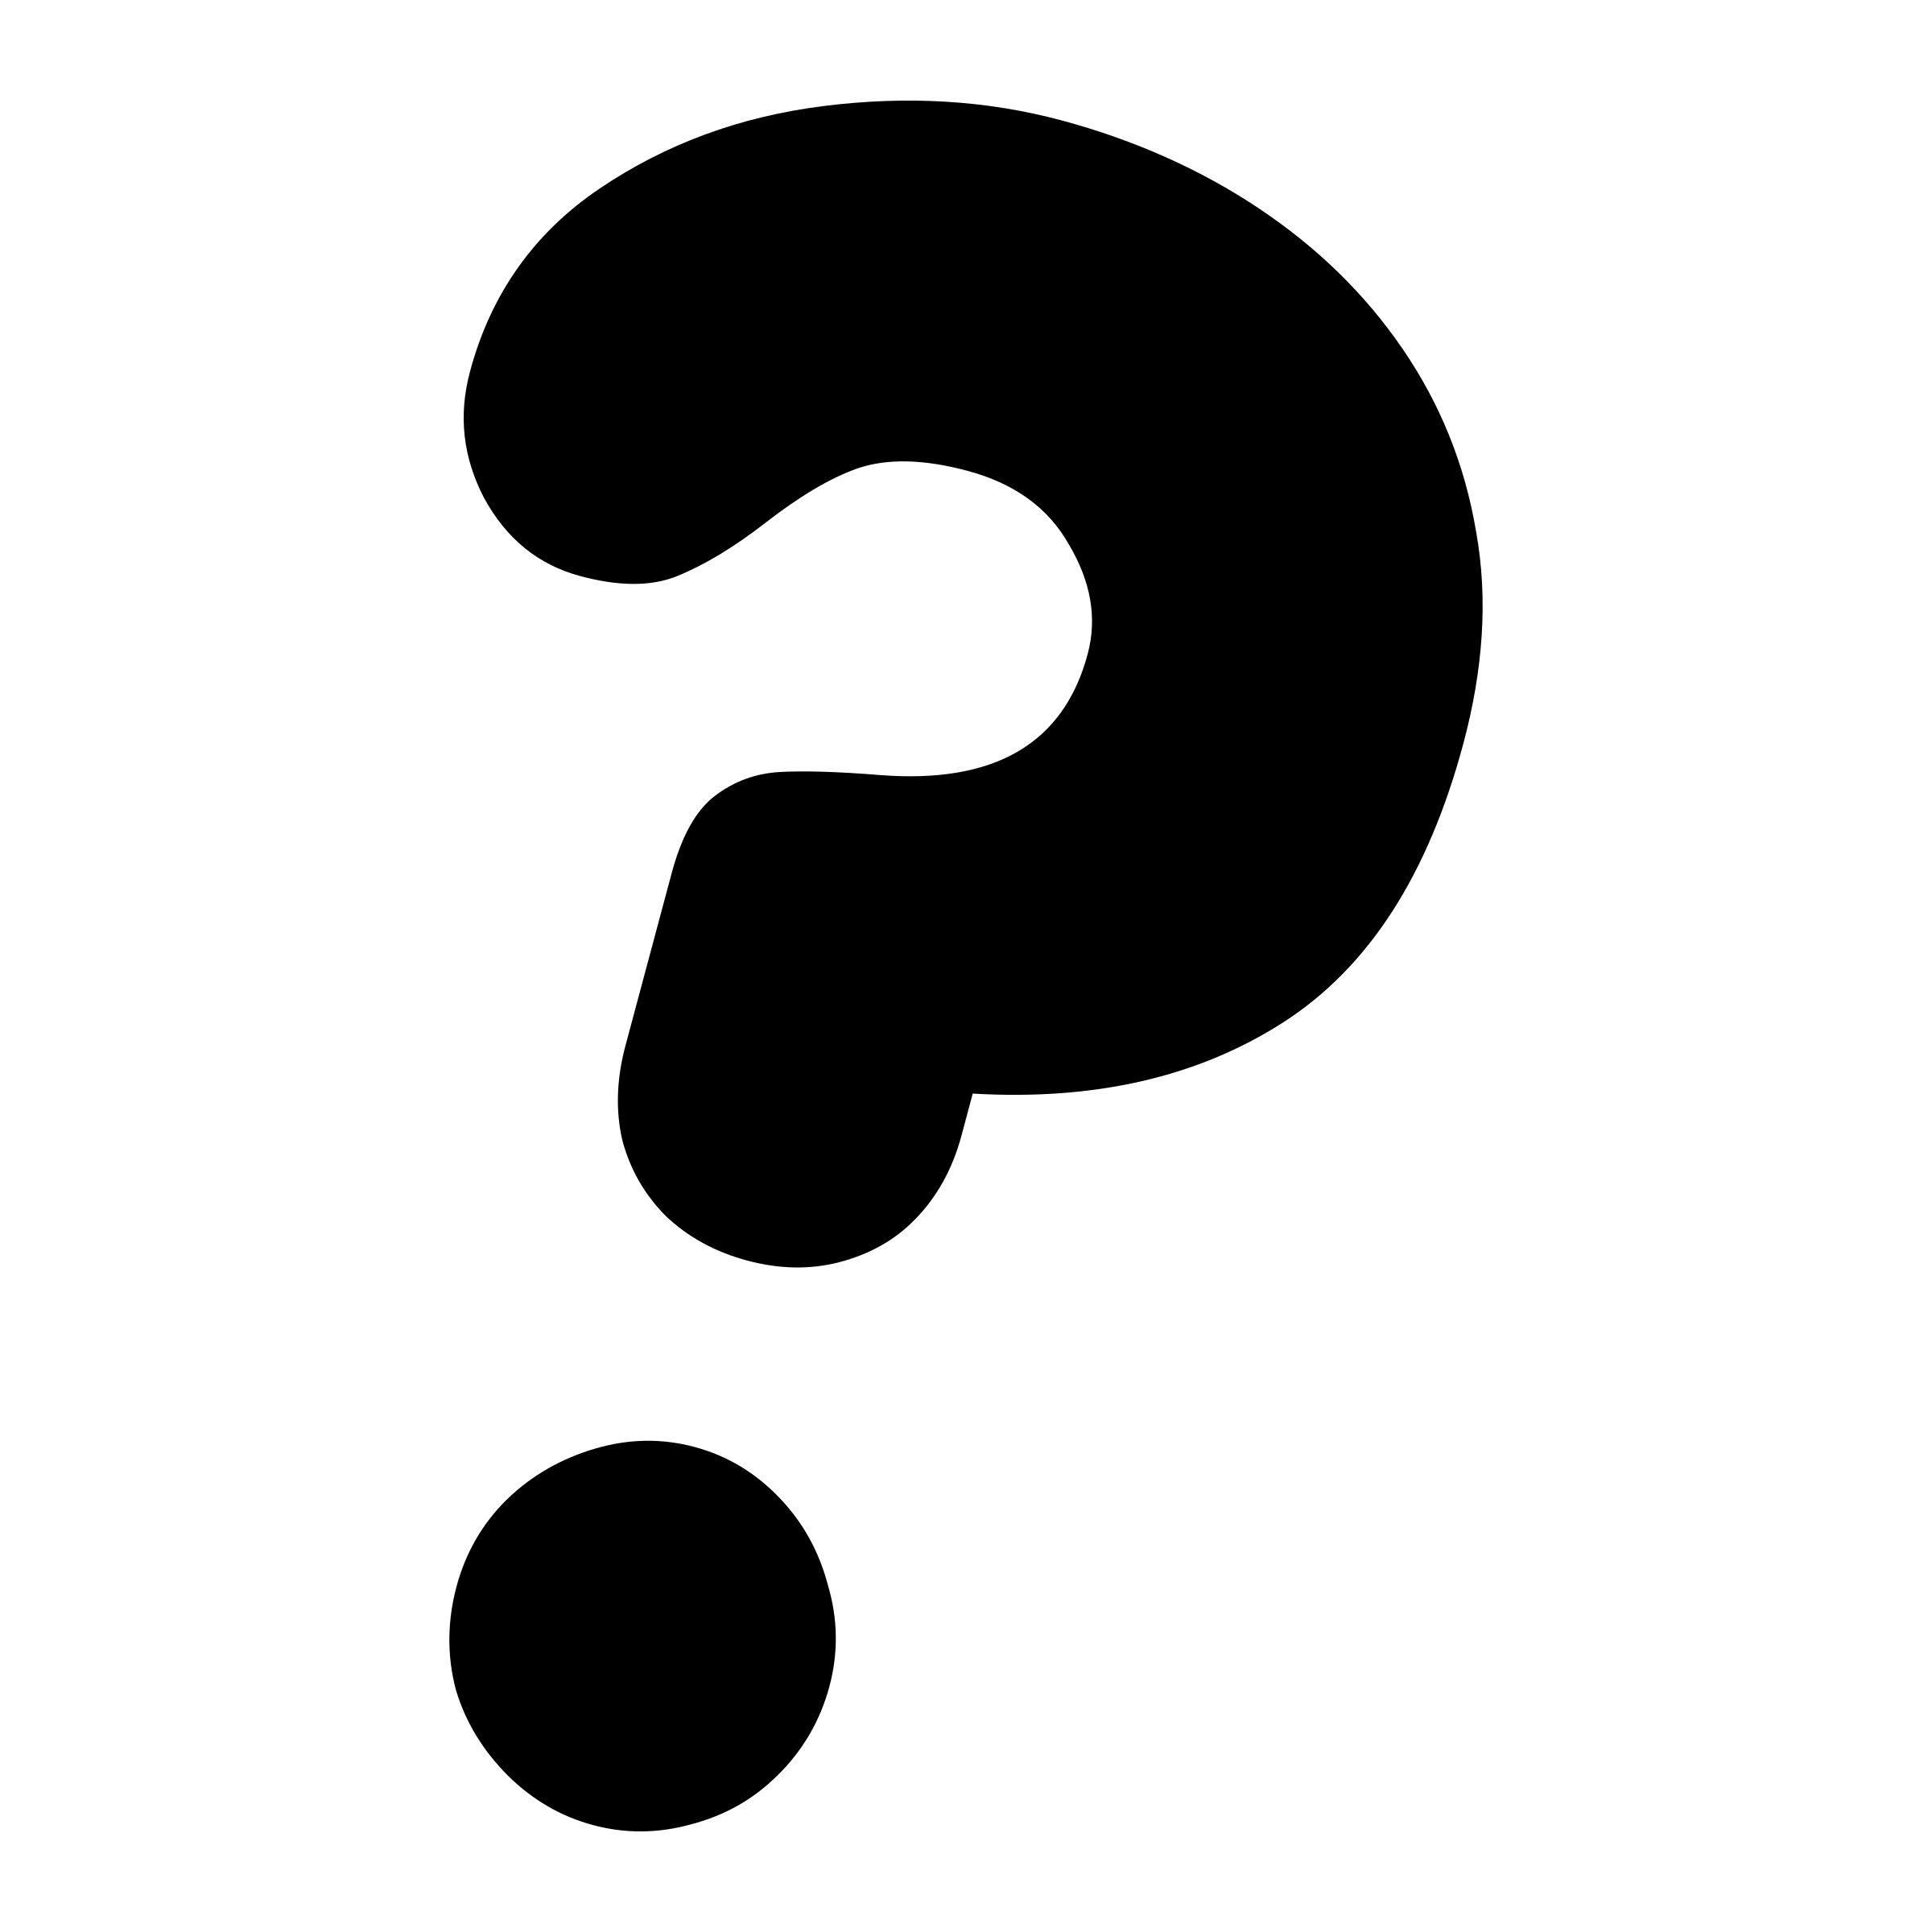 ... Printable question mark c - Question Mark Clipart